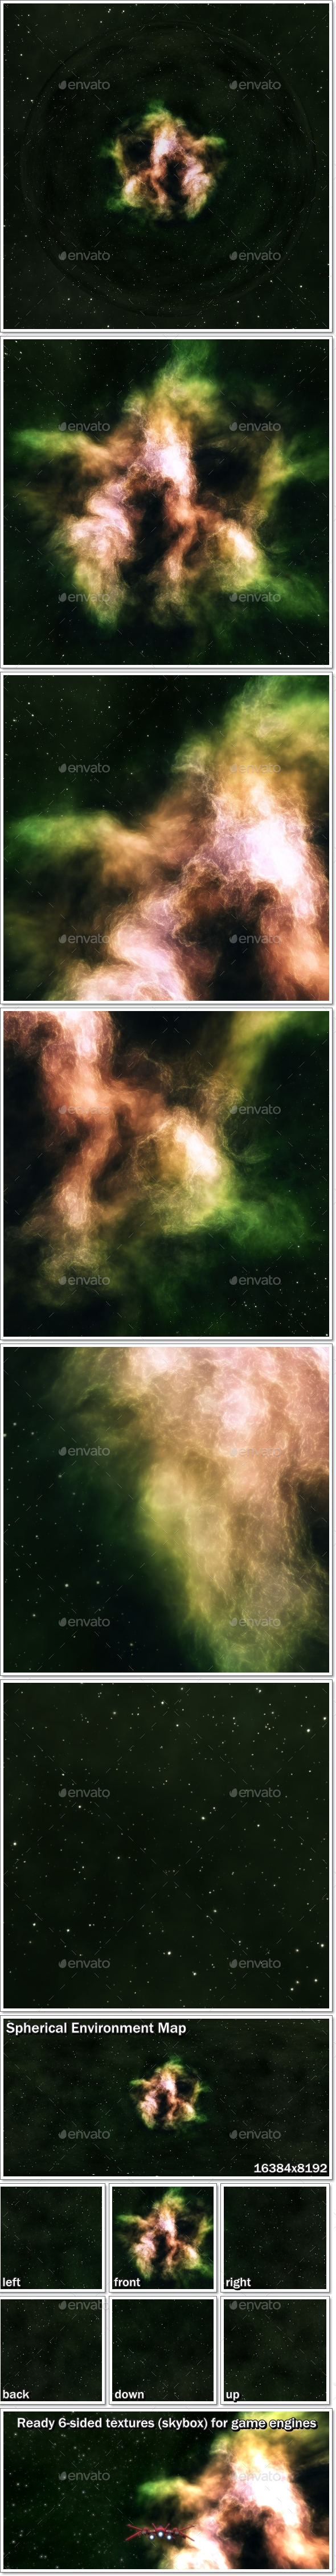 3DOcean Nebula Space Environment HDRI Map 007 20759414